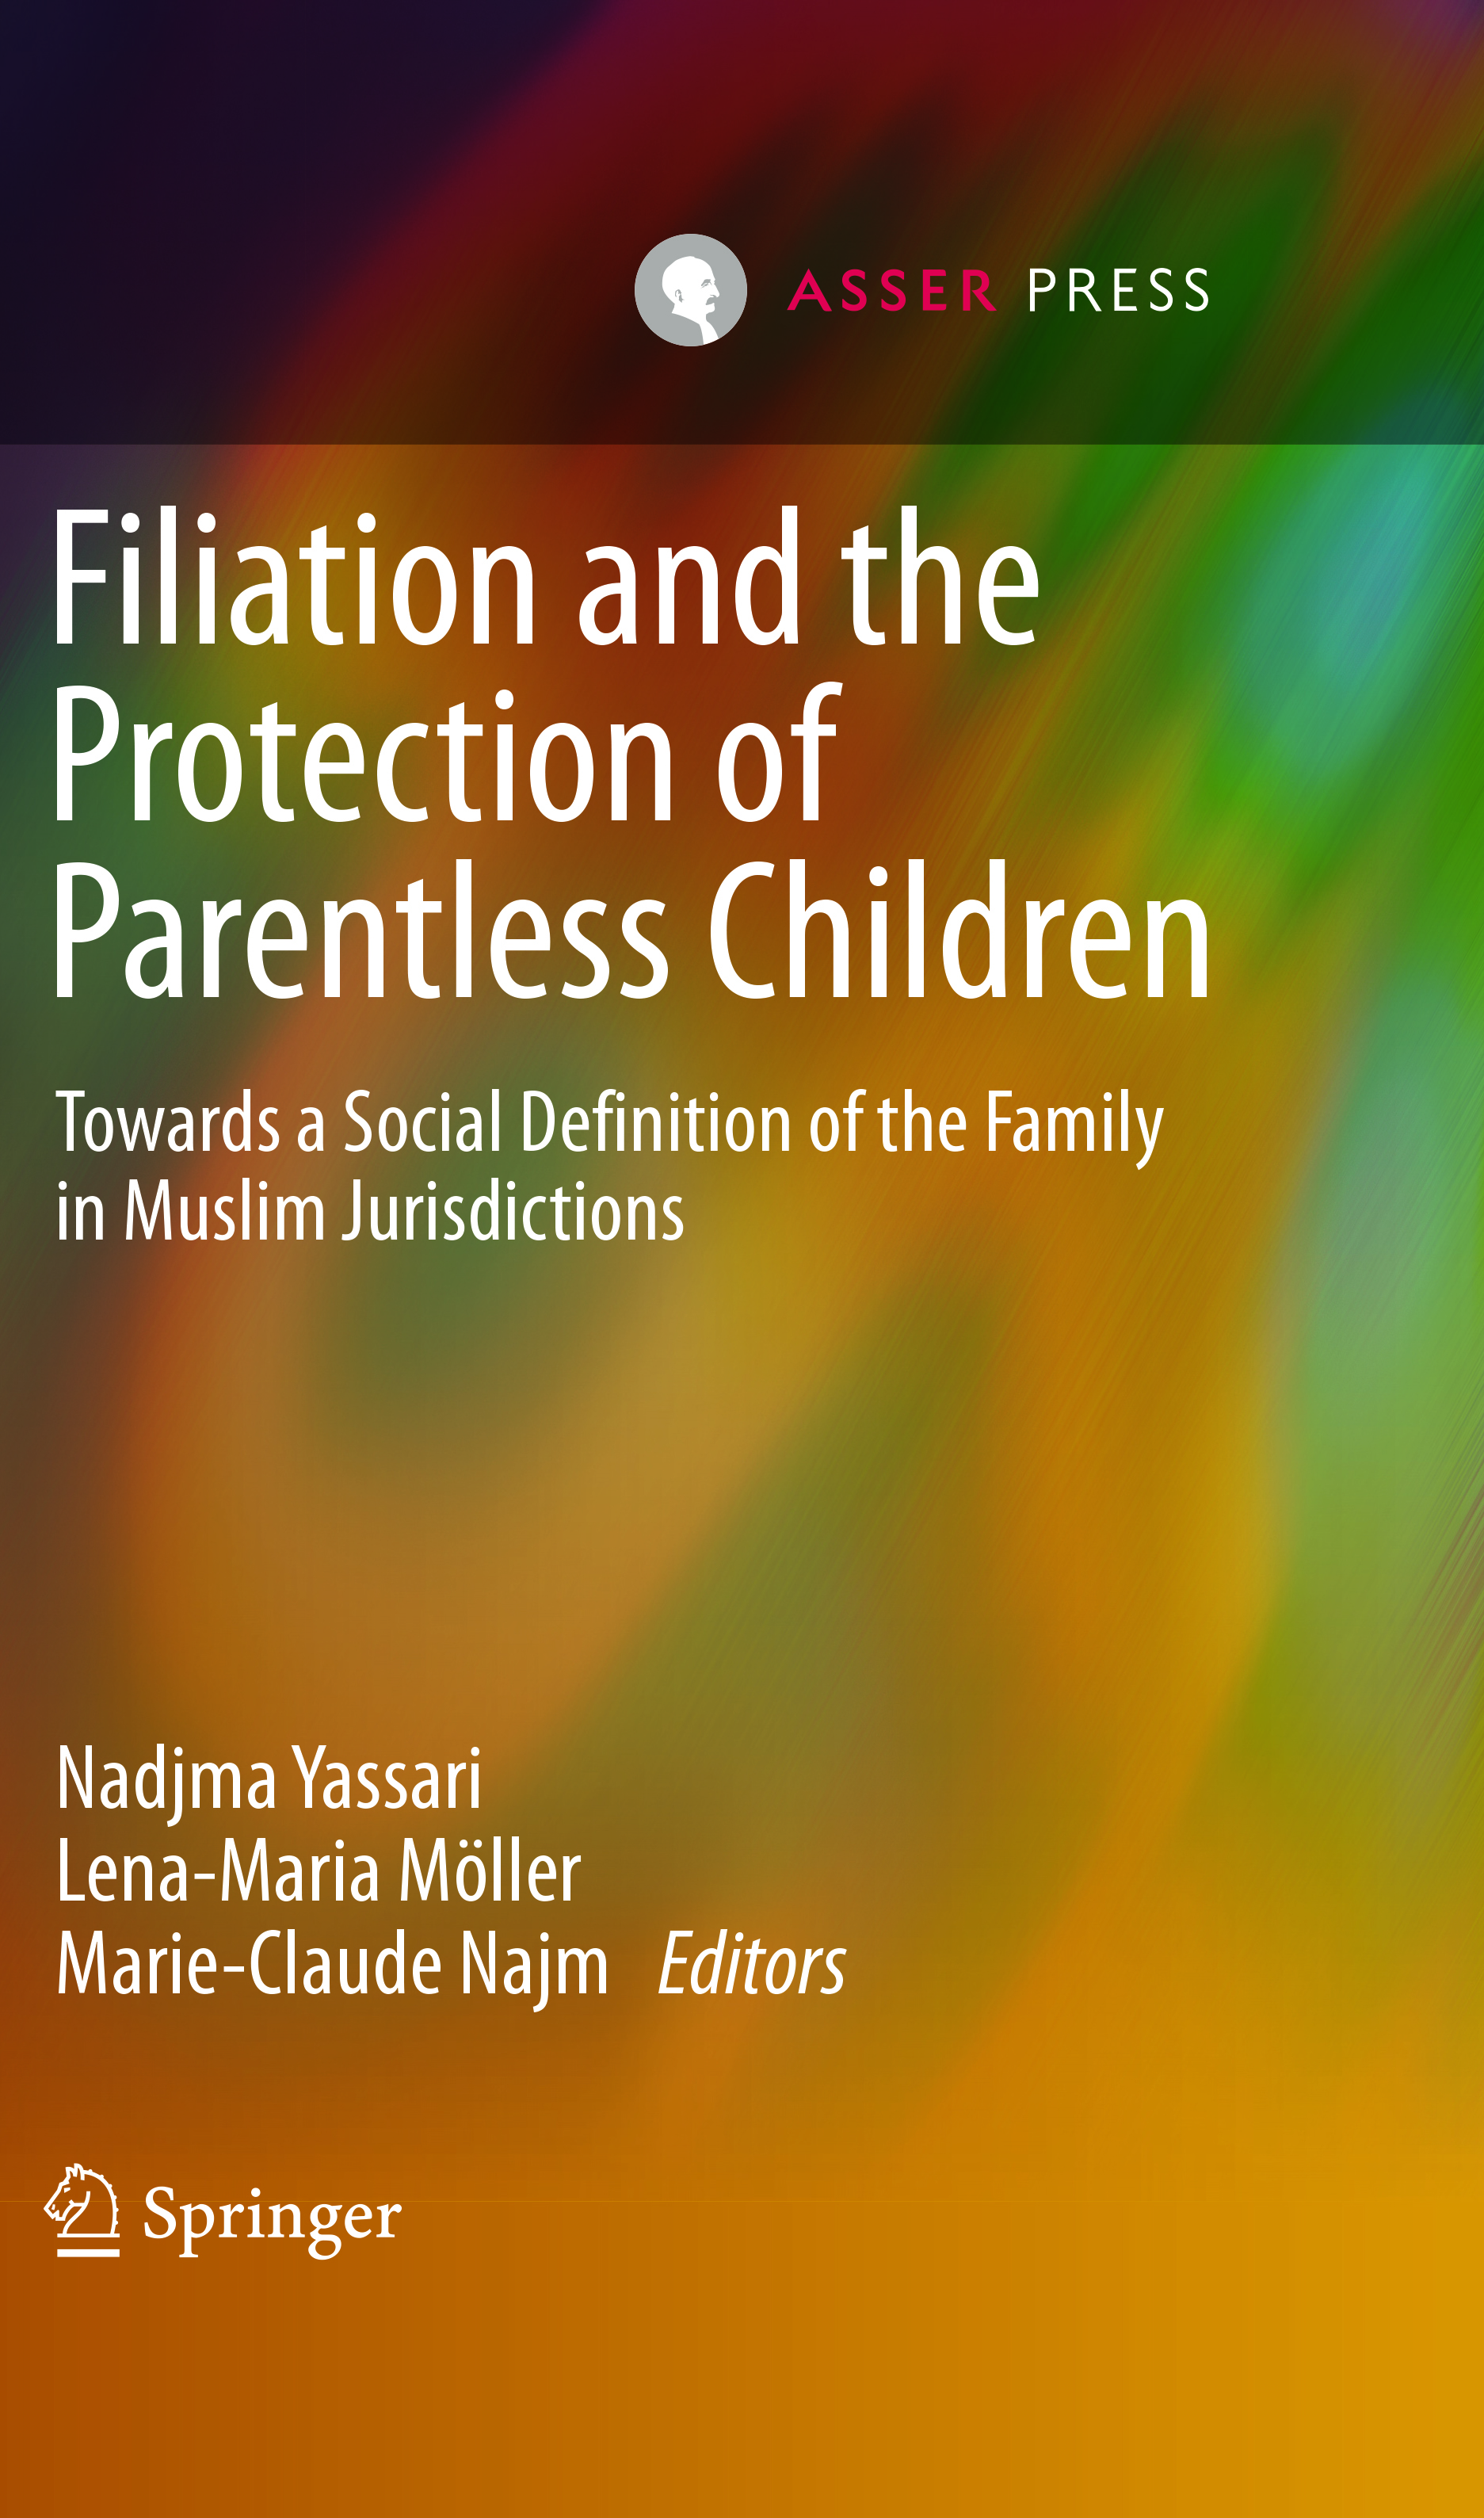 Filiation and the Protection of Parentless Children - Towards a Social Definition of the Family in Muslim Jurisdictions